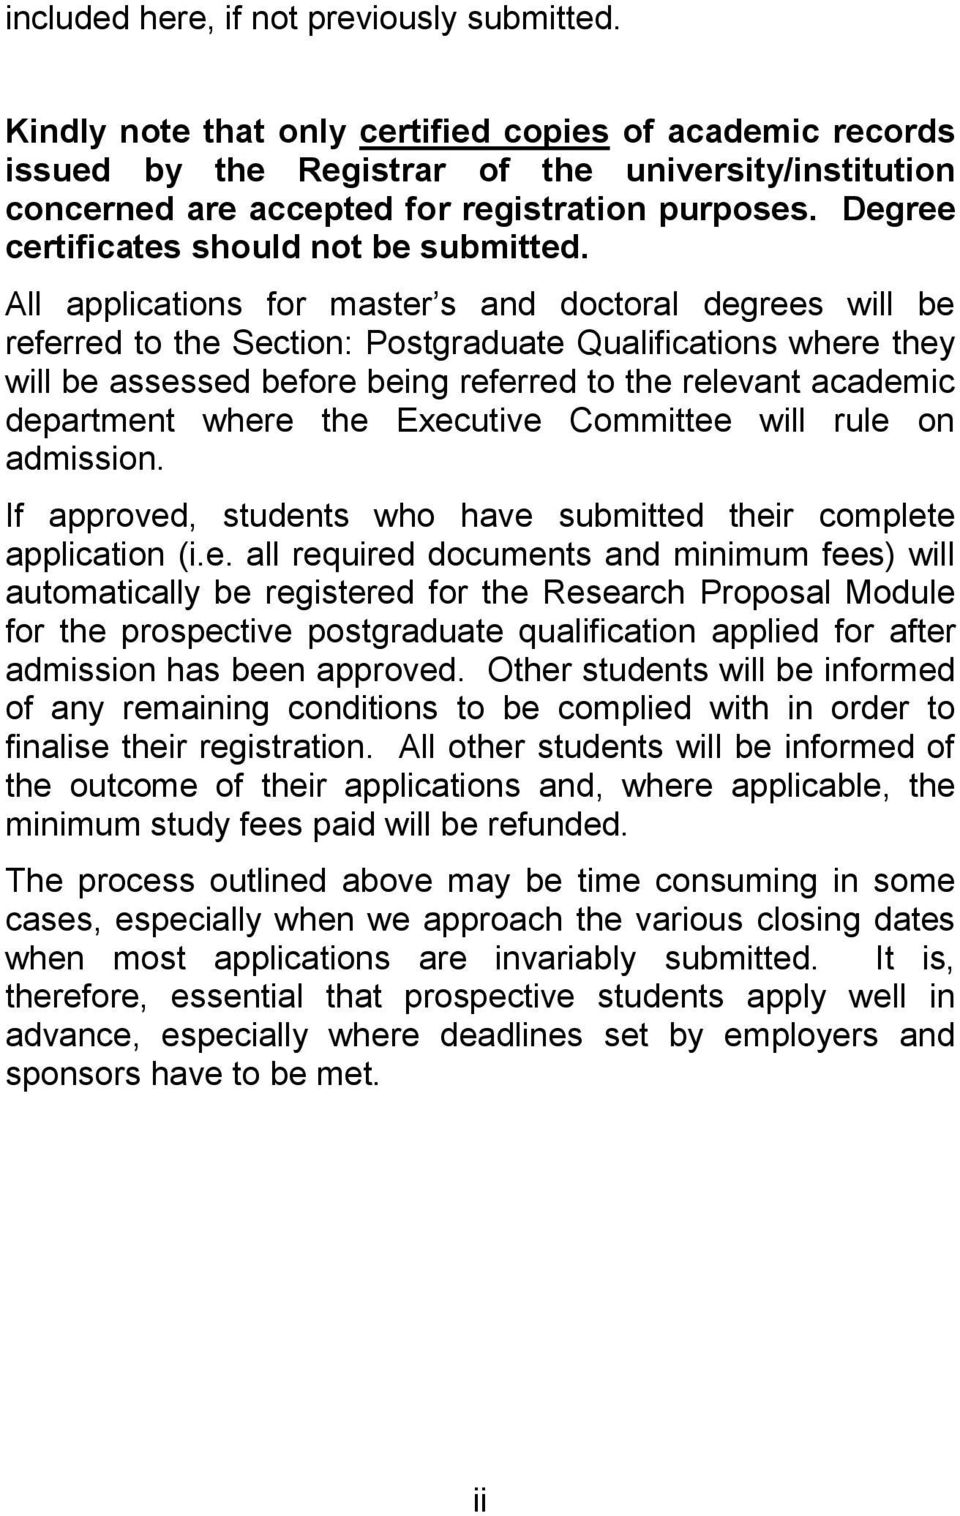 Degree certificates should not be submitted.